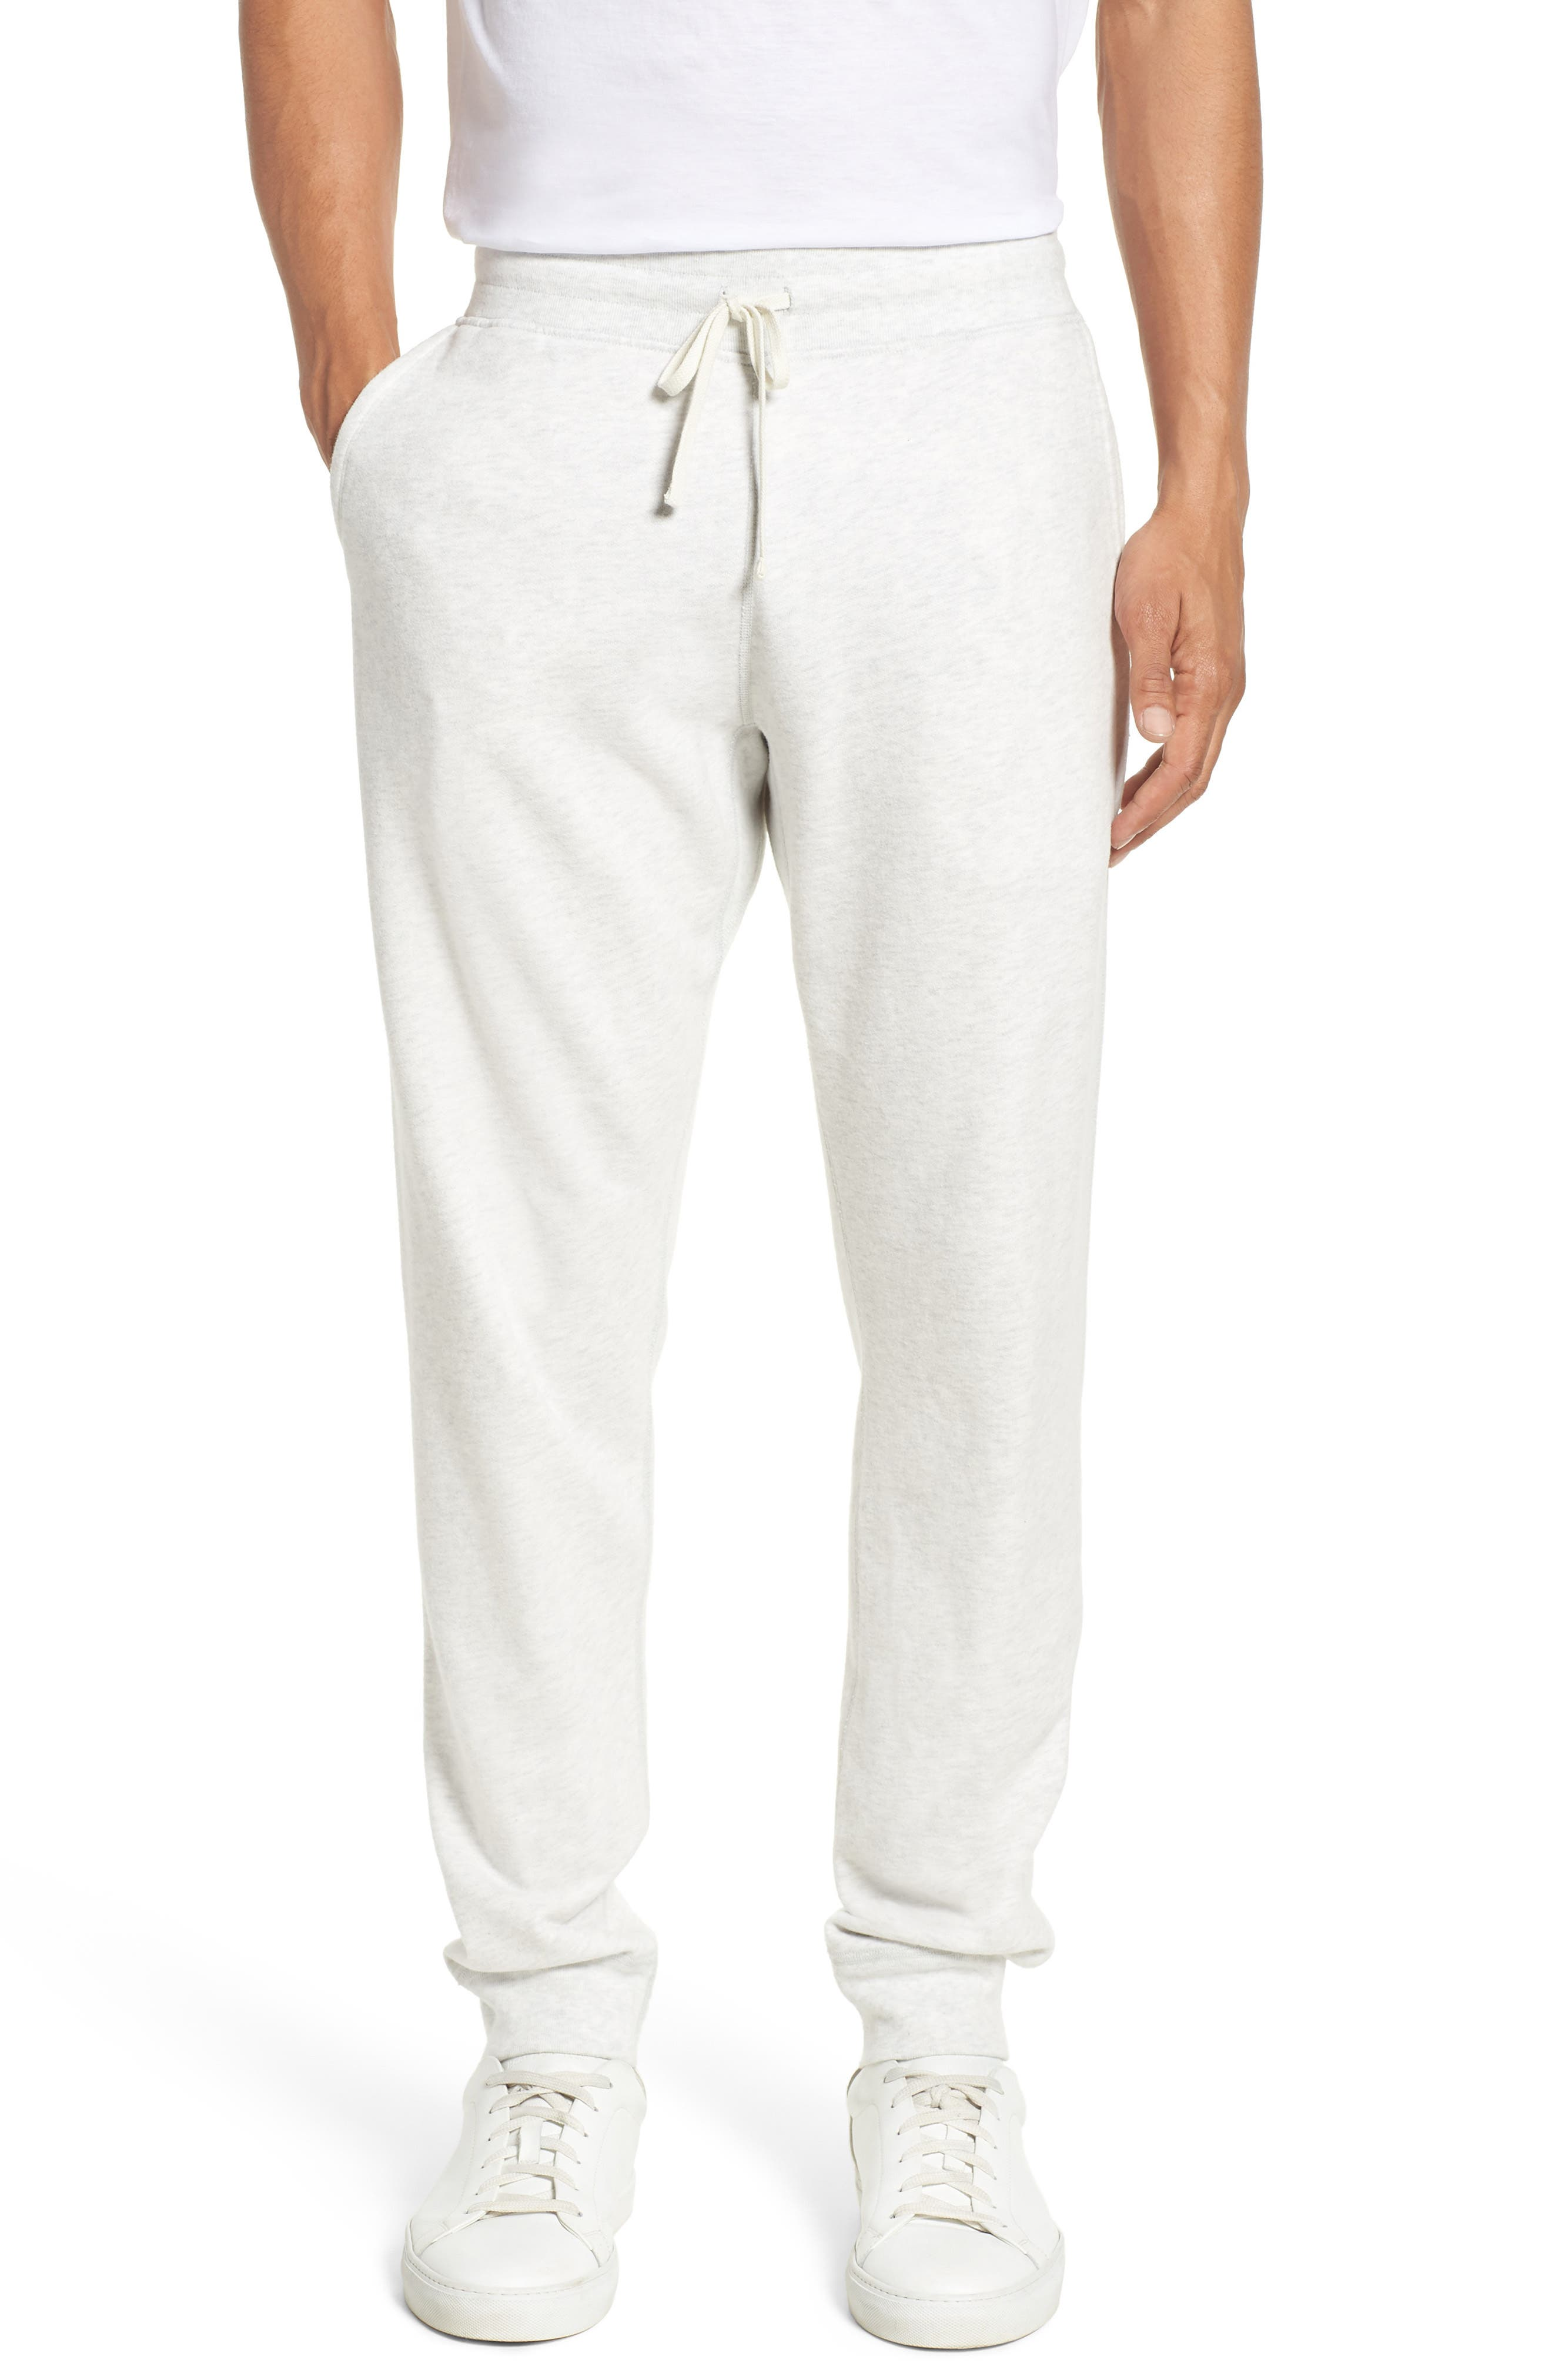 Slim Fit Sweatpants,                             Main thumbnail 1, color,                             Heather Ash